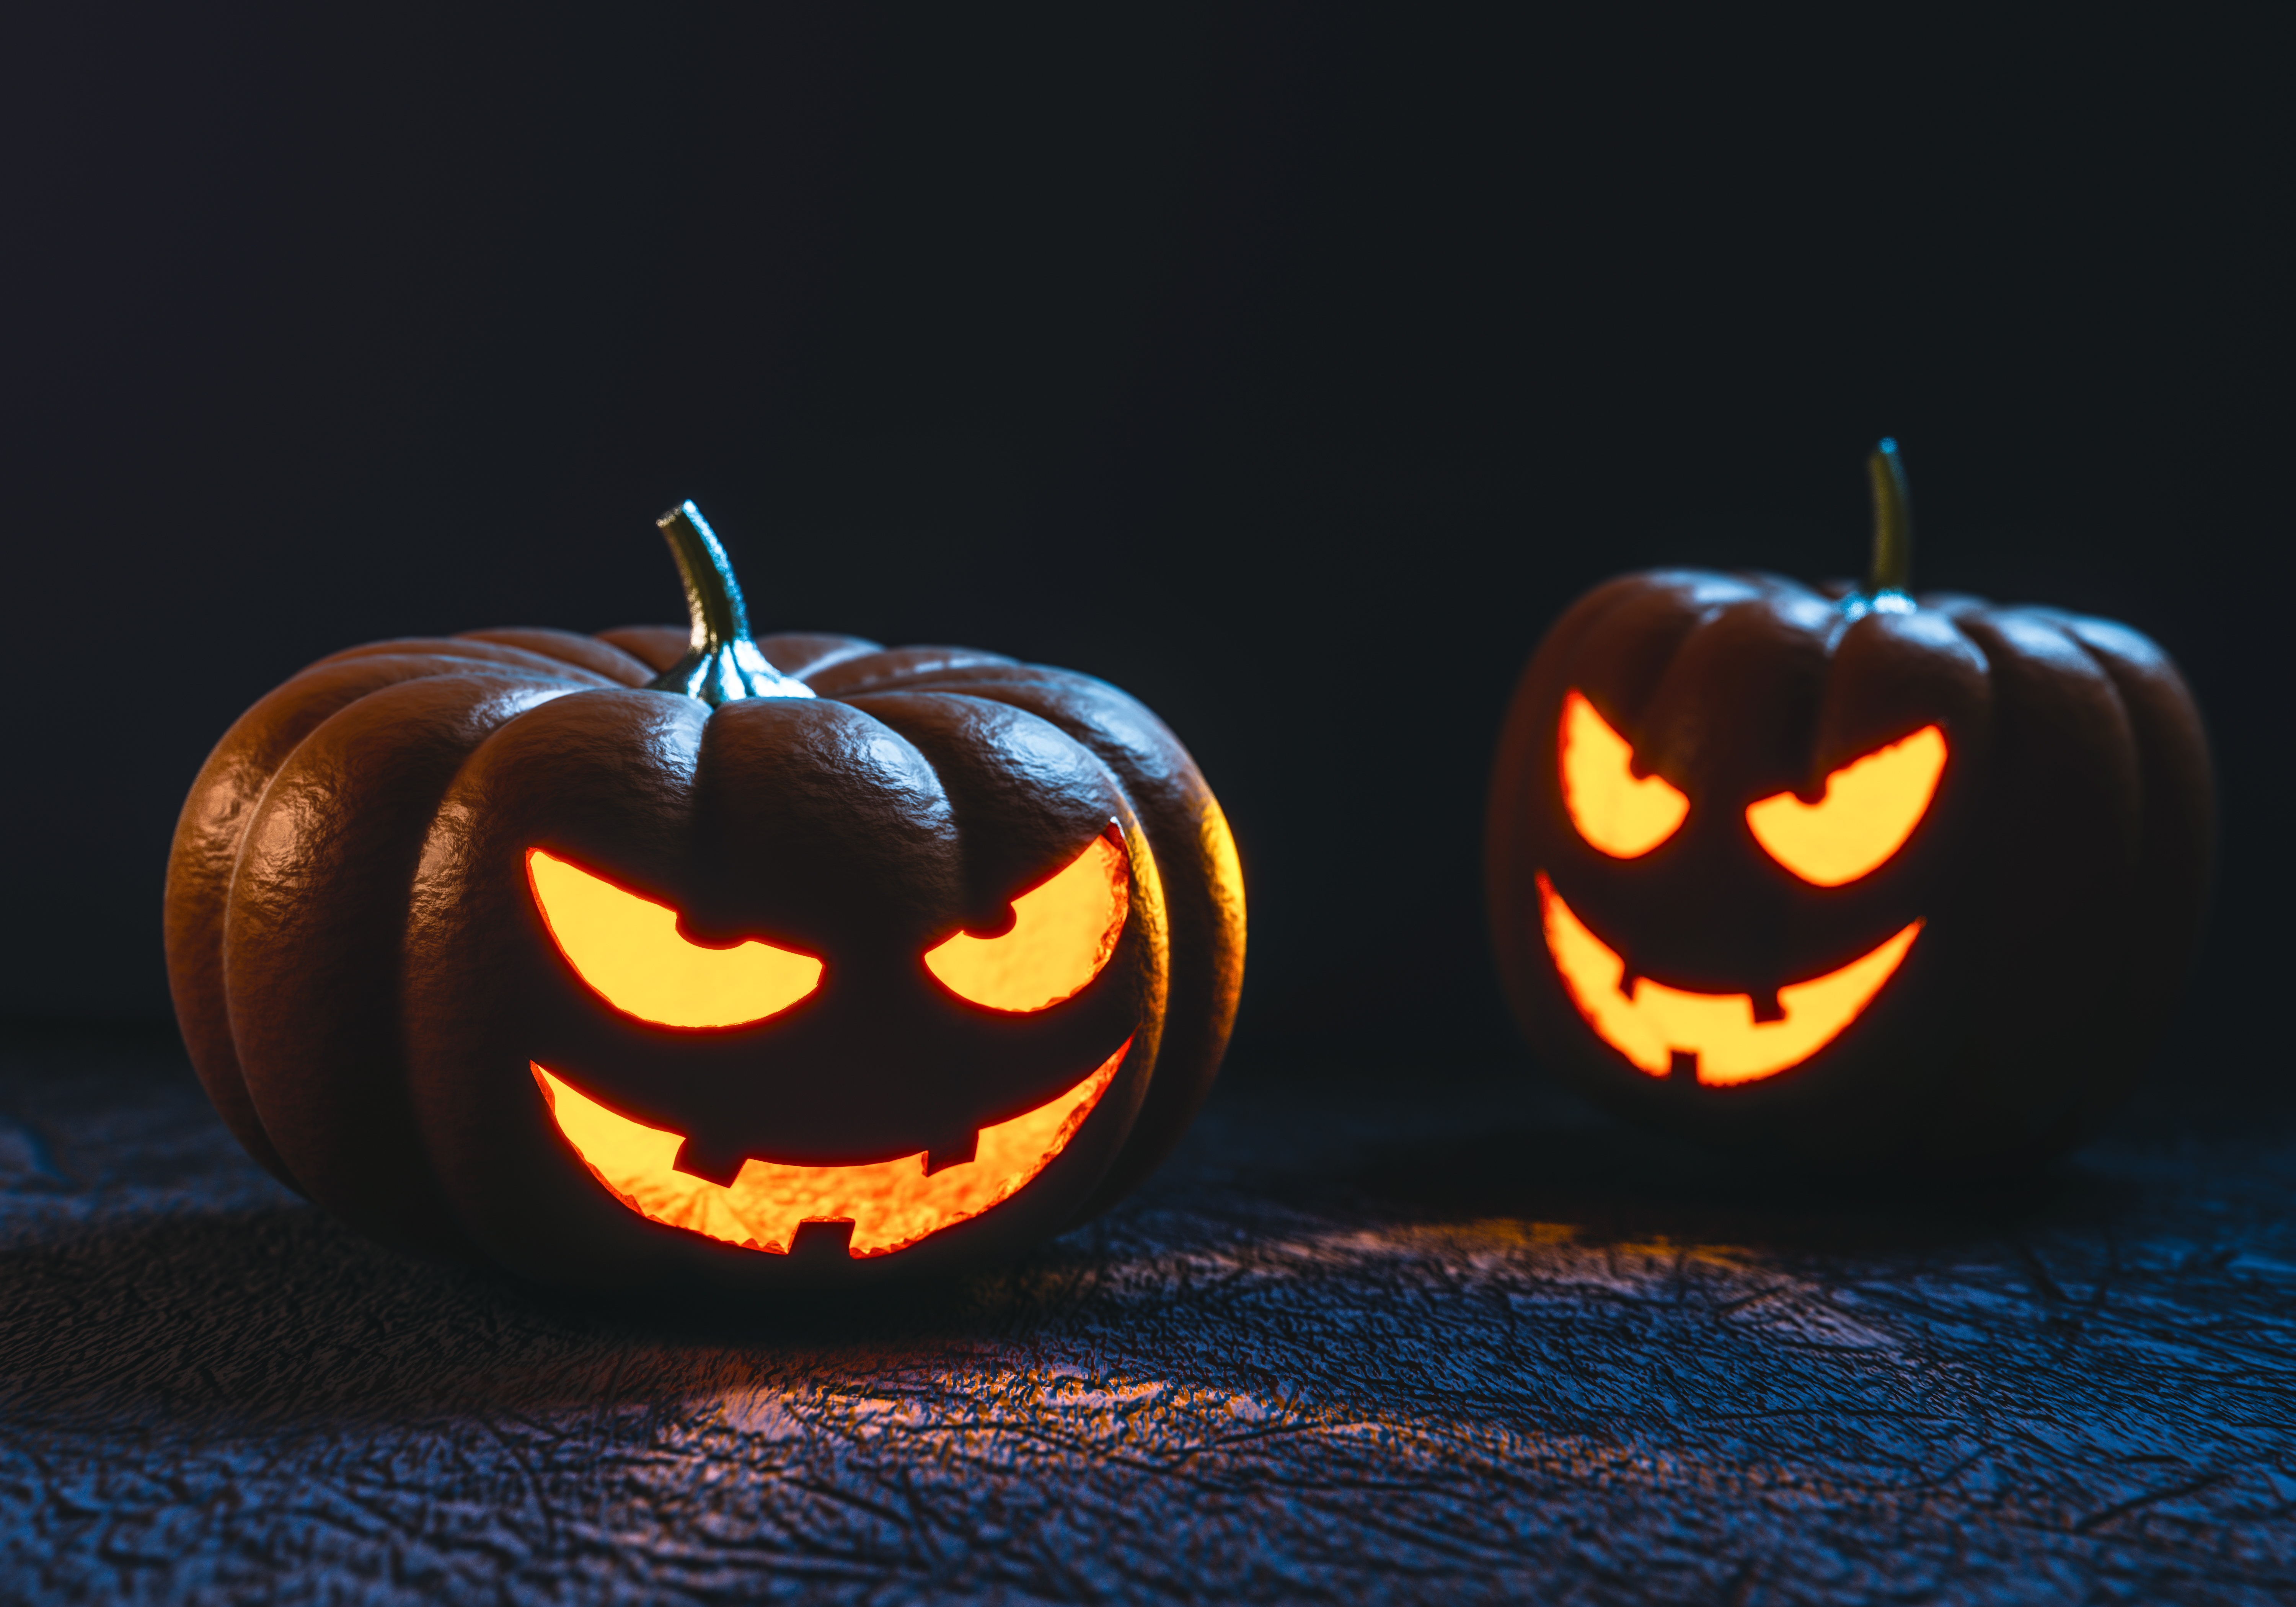 proven halloween promos: 6 ideas for campaigns | marketingsherpa